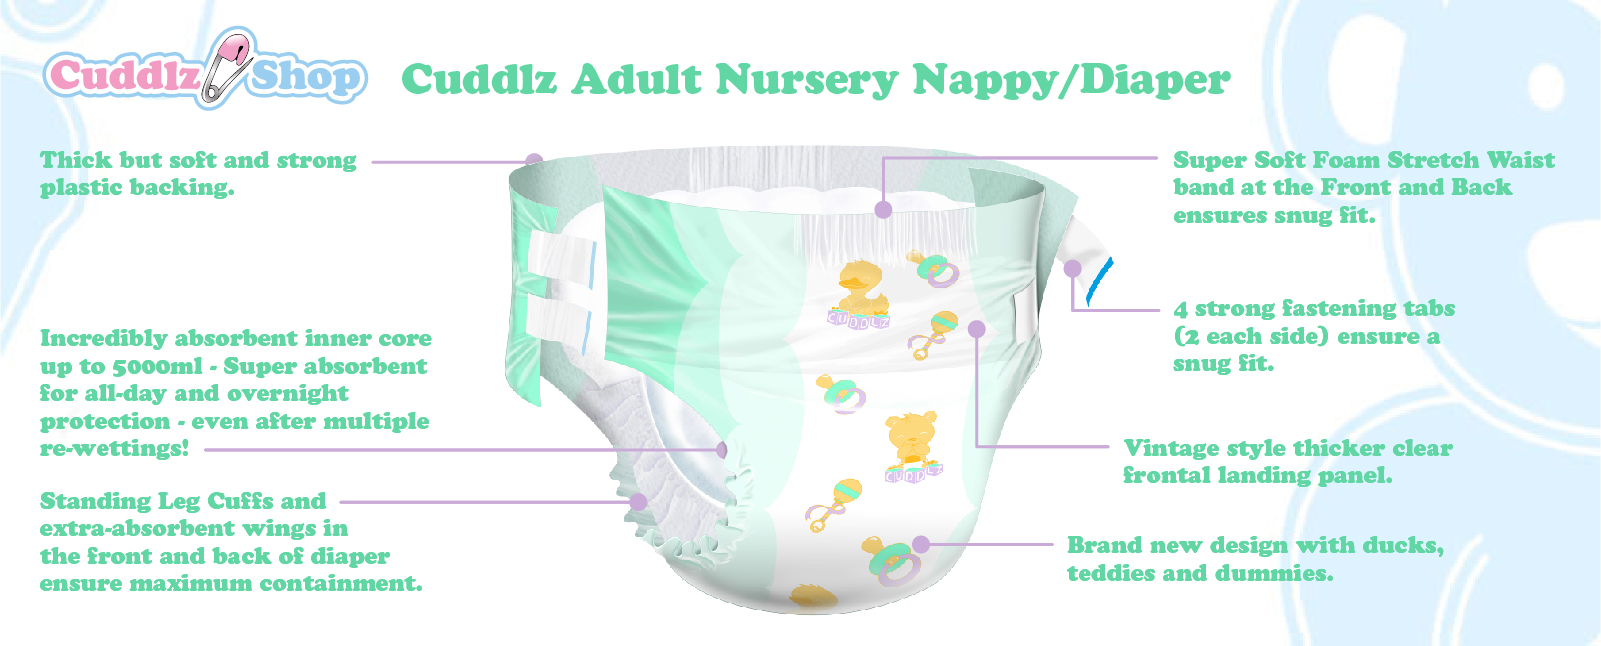 Cuddlz adult nursery nappy / diaper abdl nappies diapers